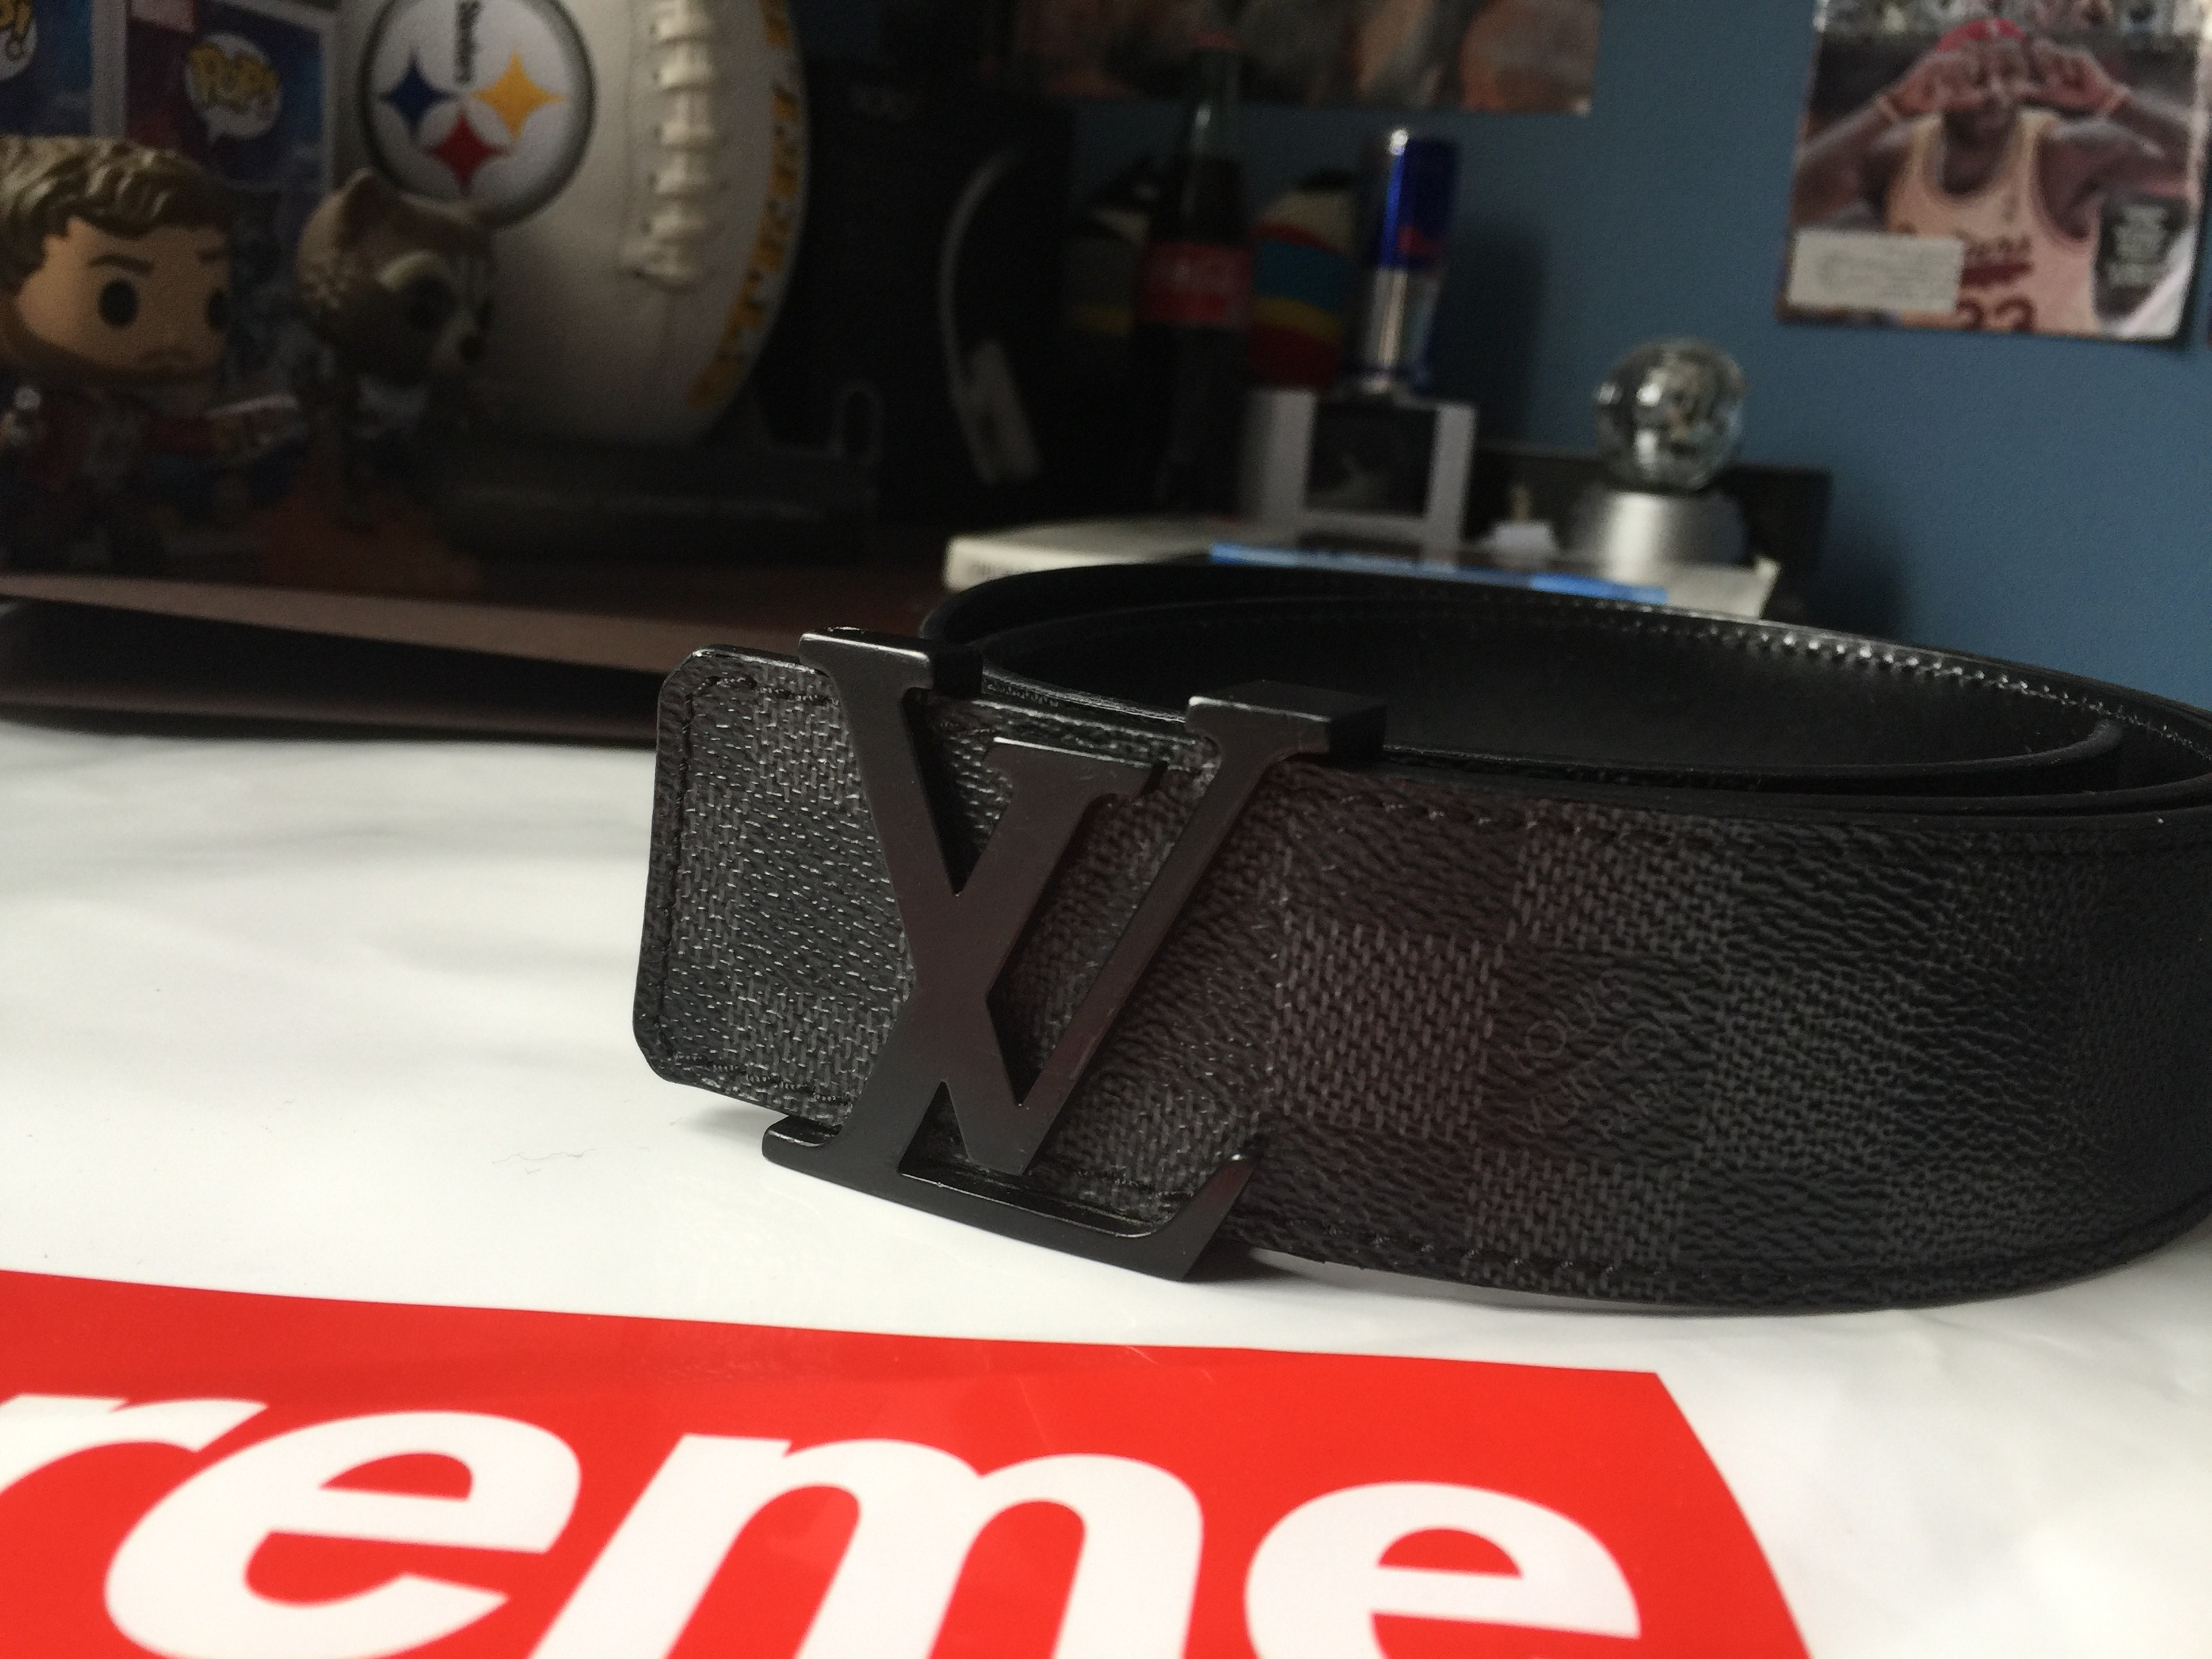 5c9e754b82a5 Louis Vuitton Lv Initiales 40mm Men s Black charcoal Belt -size 32 ...